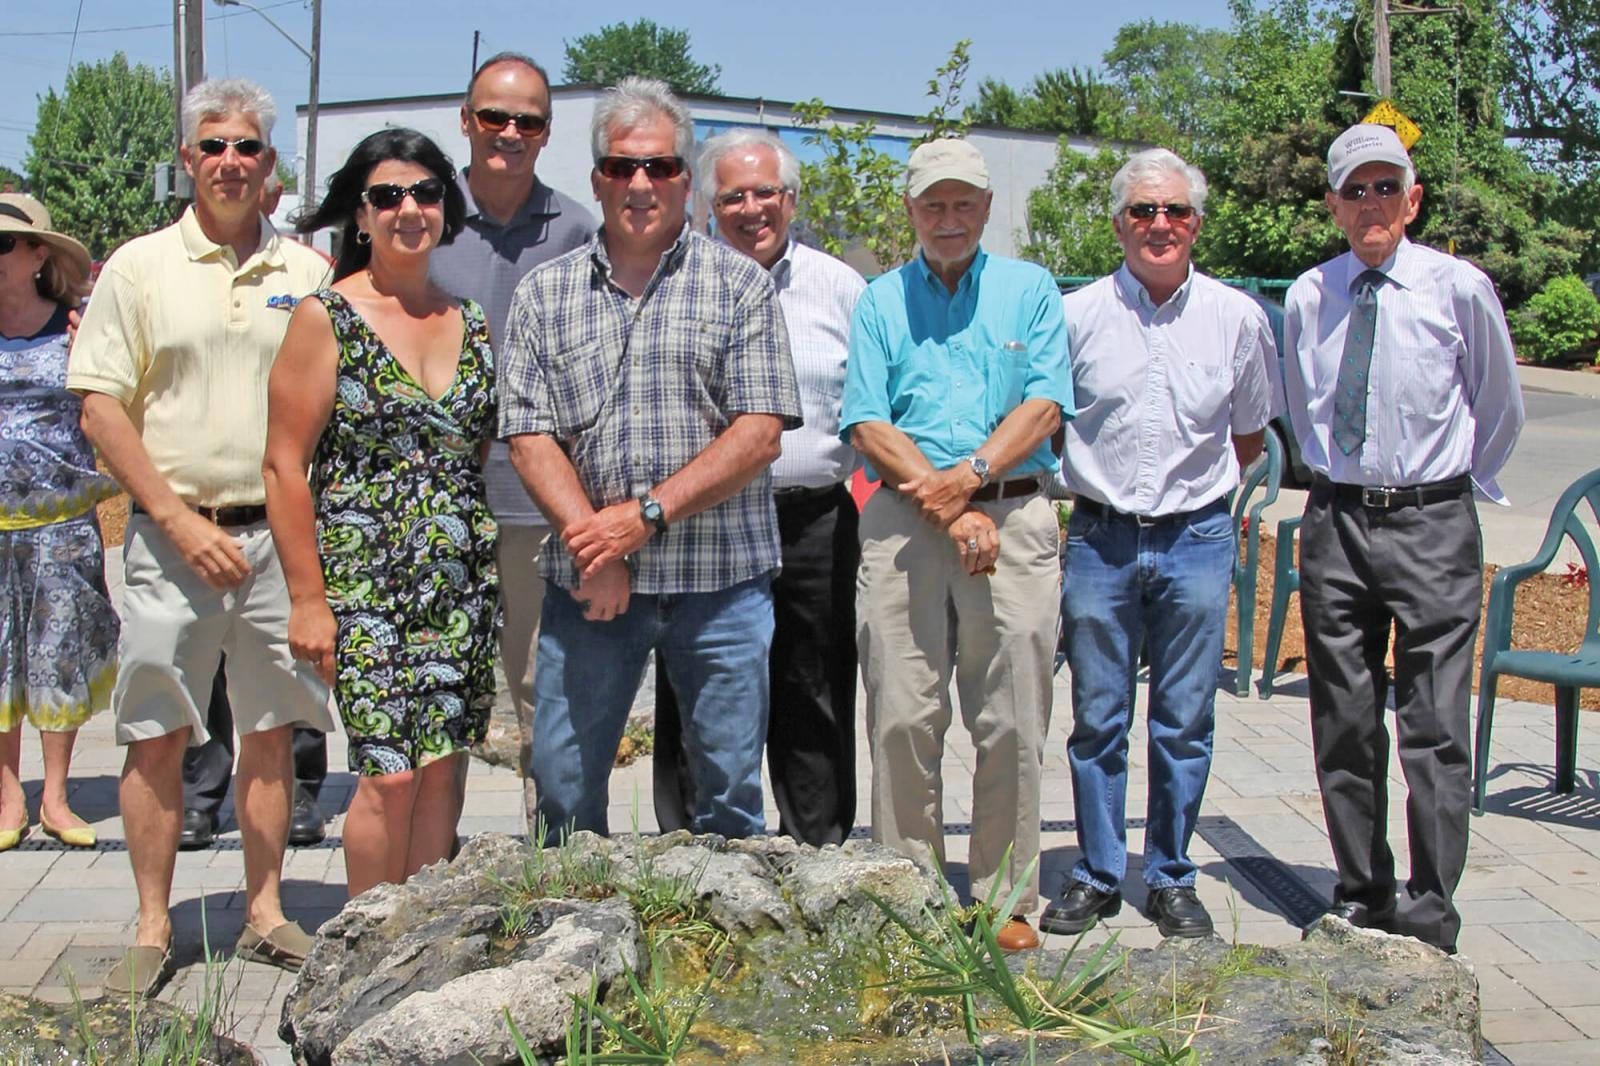 Past and current members of the Windsor Chapter attended the official opening of the Perry Molema Memorial Garden ion May 31.